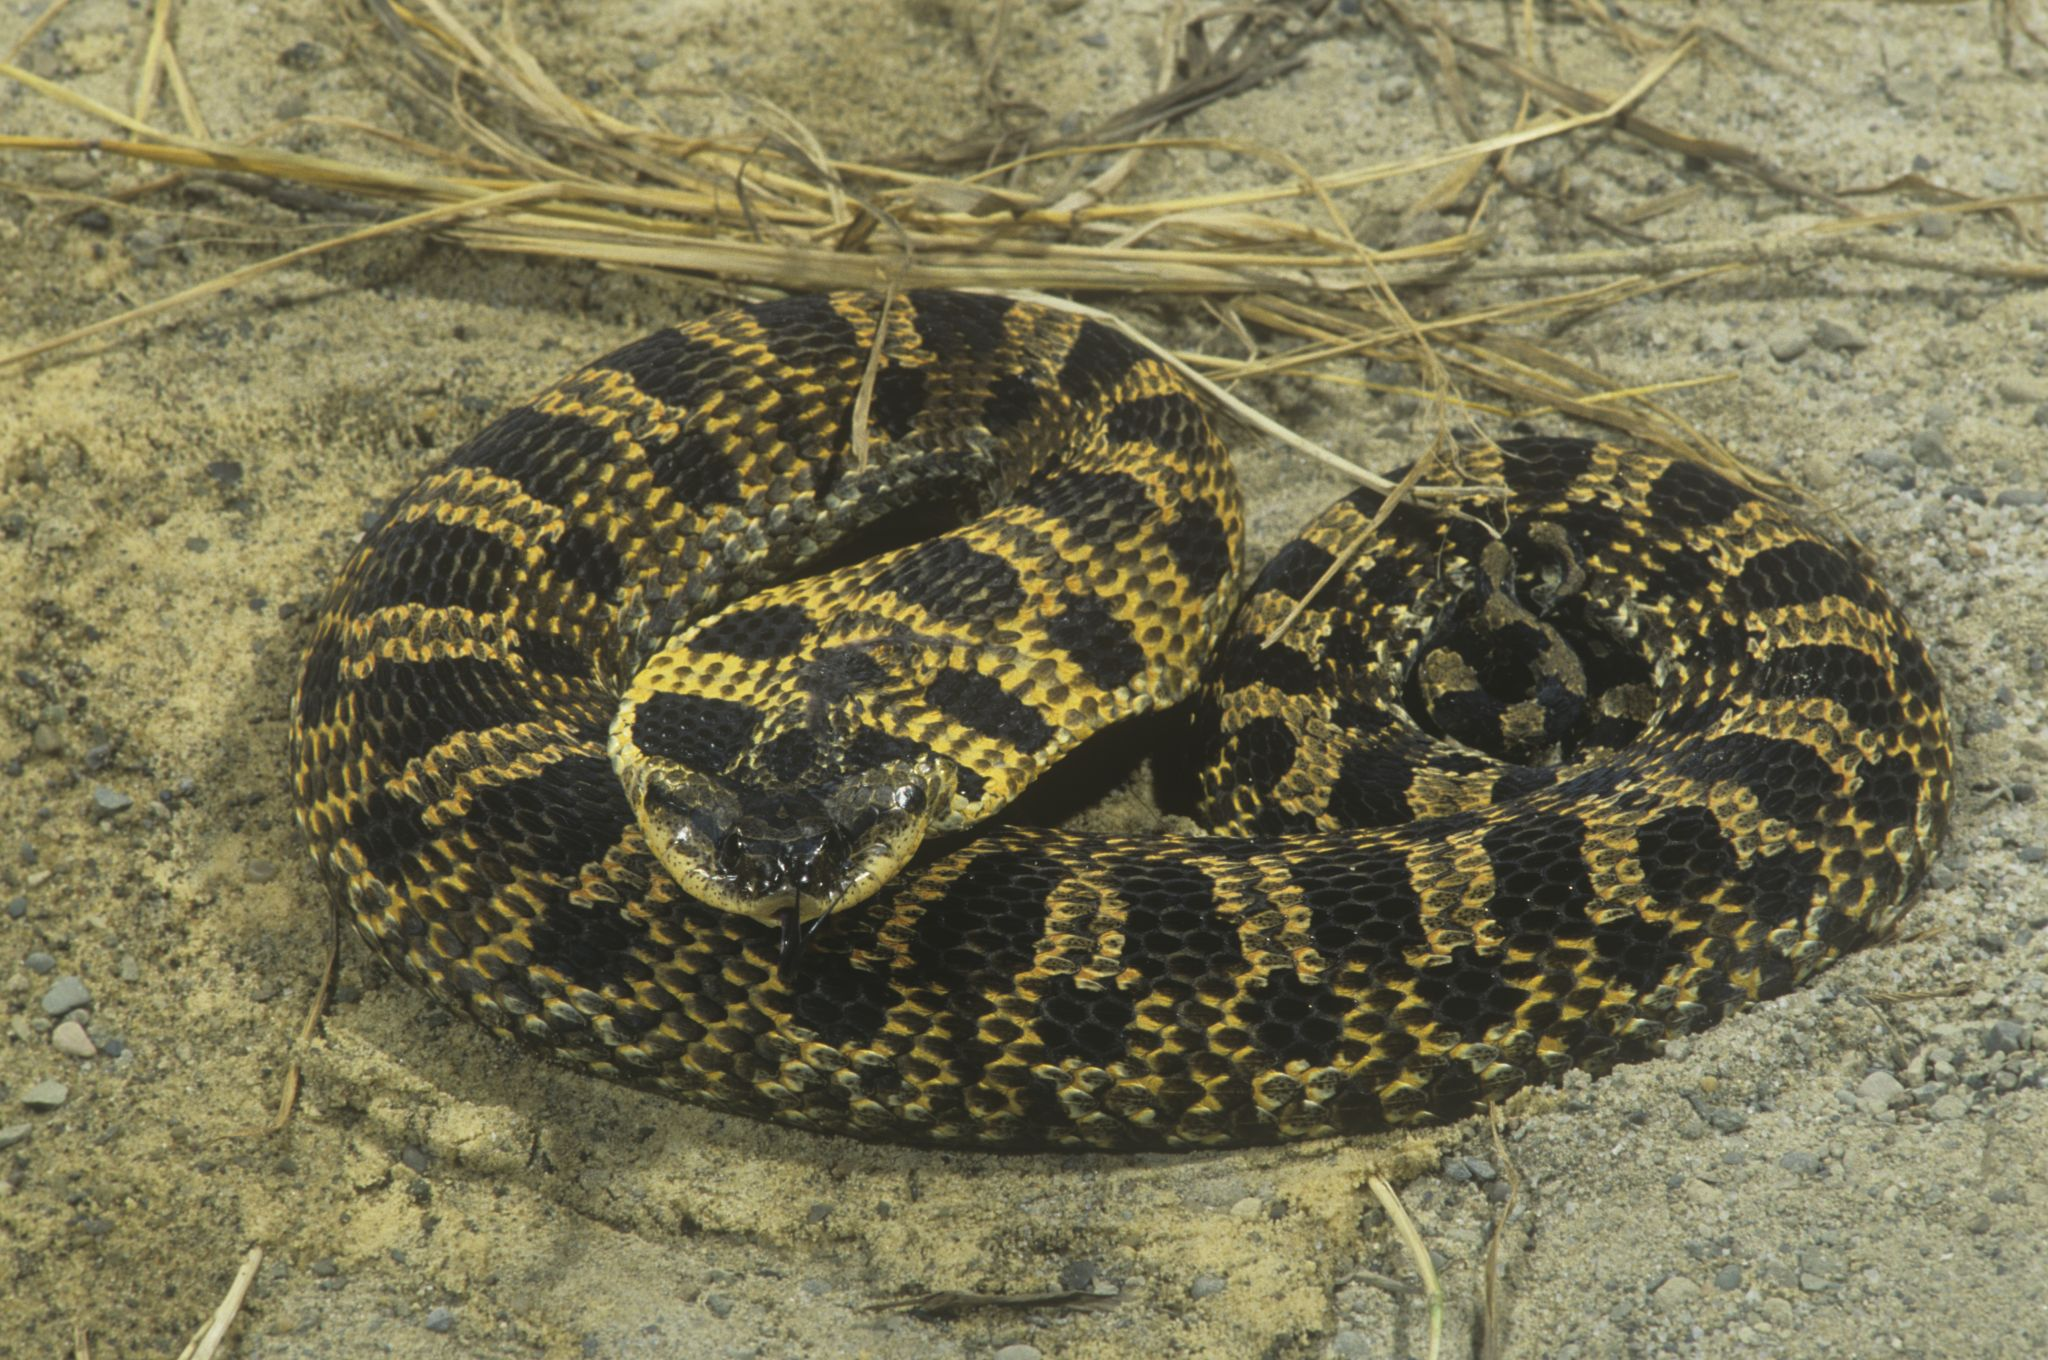 11 non-venomous snakes you want in your backyard - Houston Chronicle